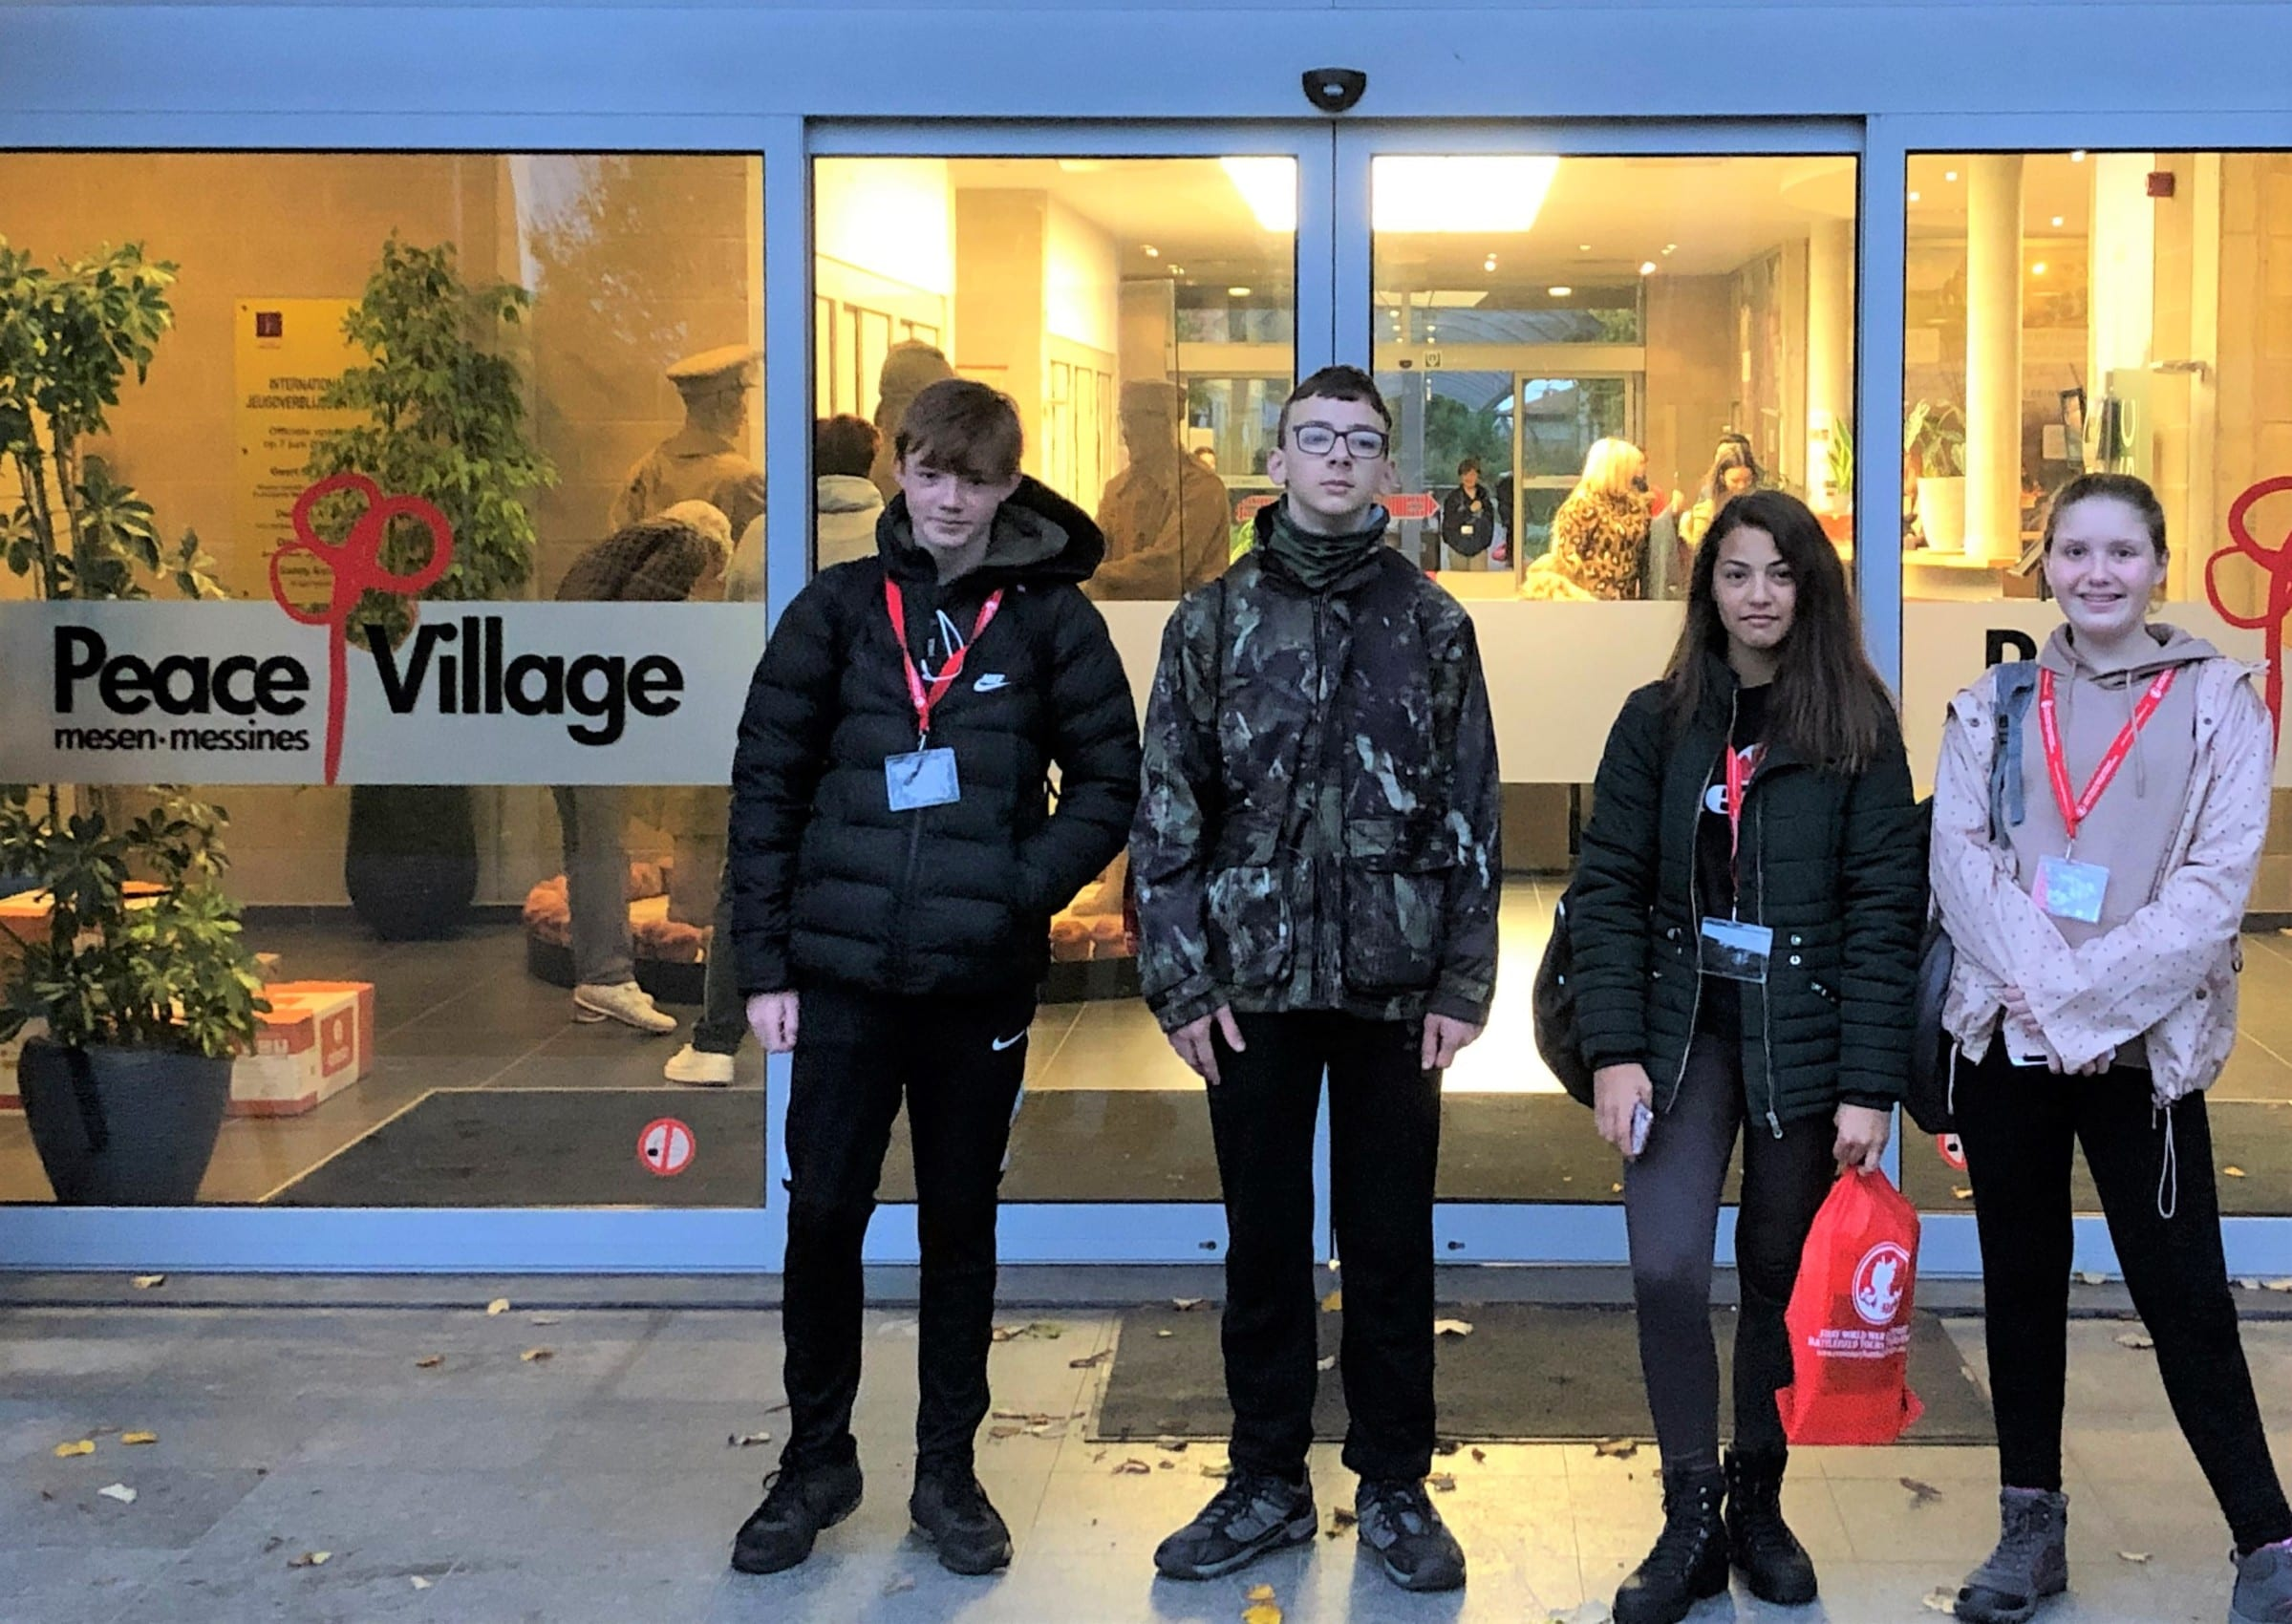 Students experience Battlefields as part of WW1 project